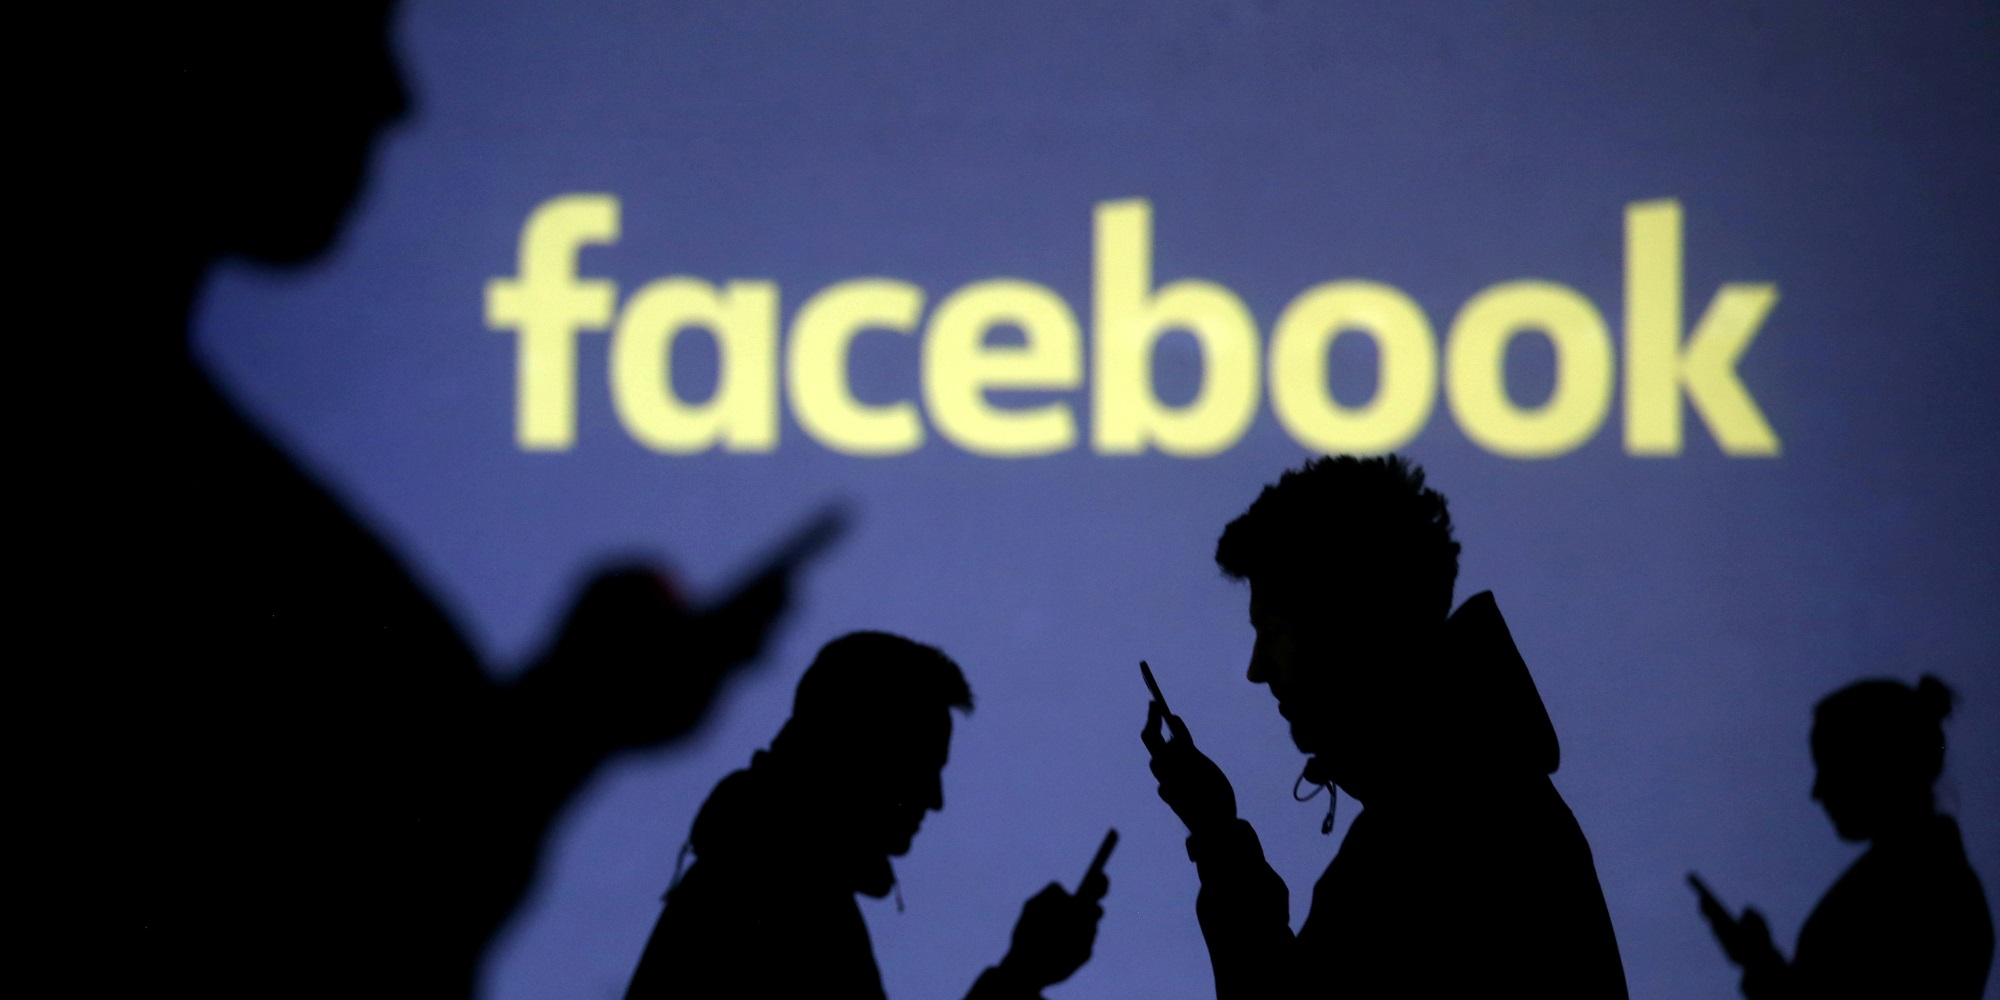 Facebook bug prevented users from deleting their accounts